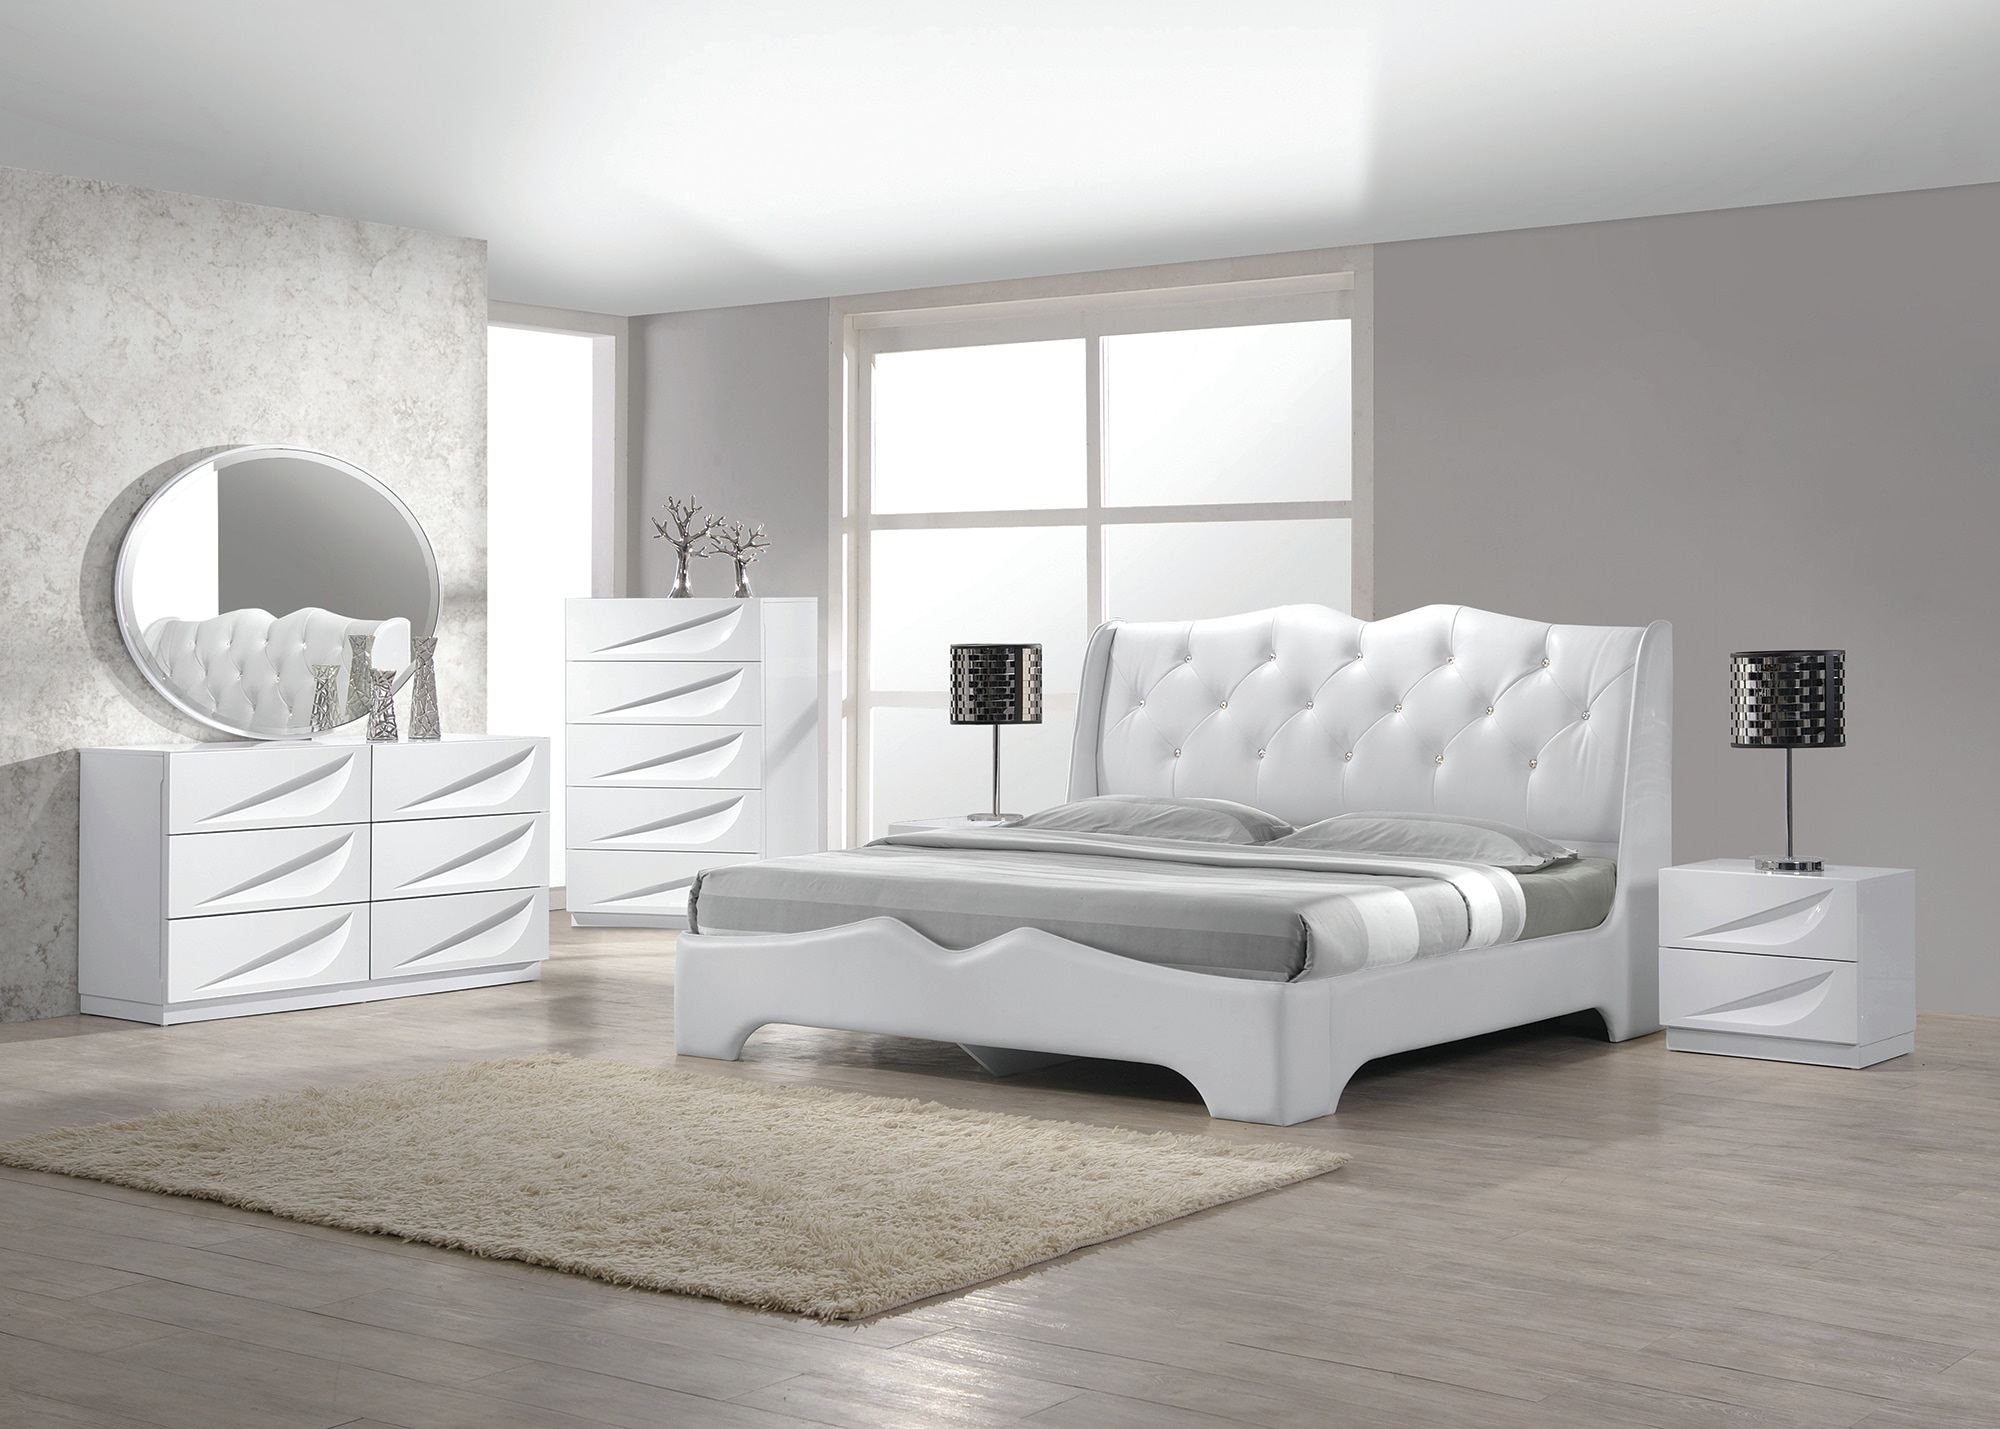 White Lacquer Bedroom Furniture